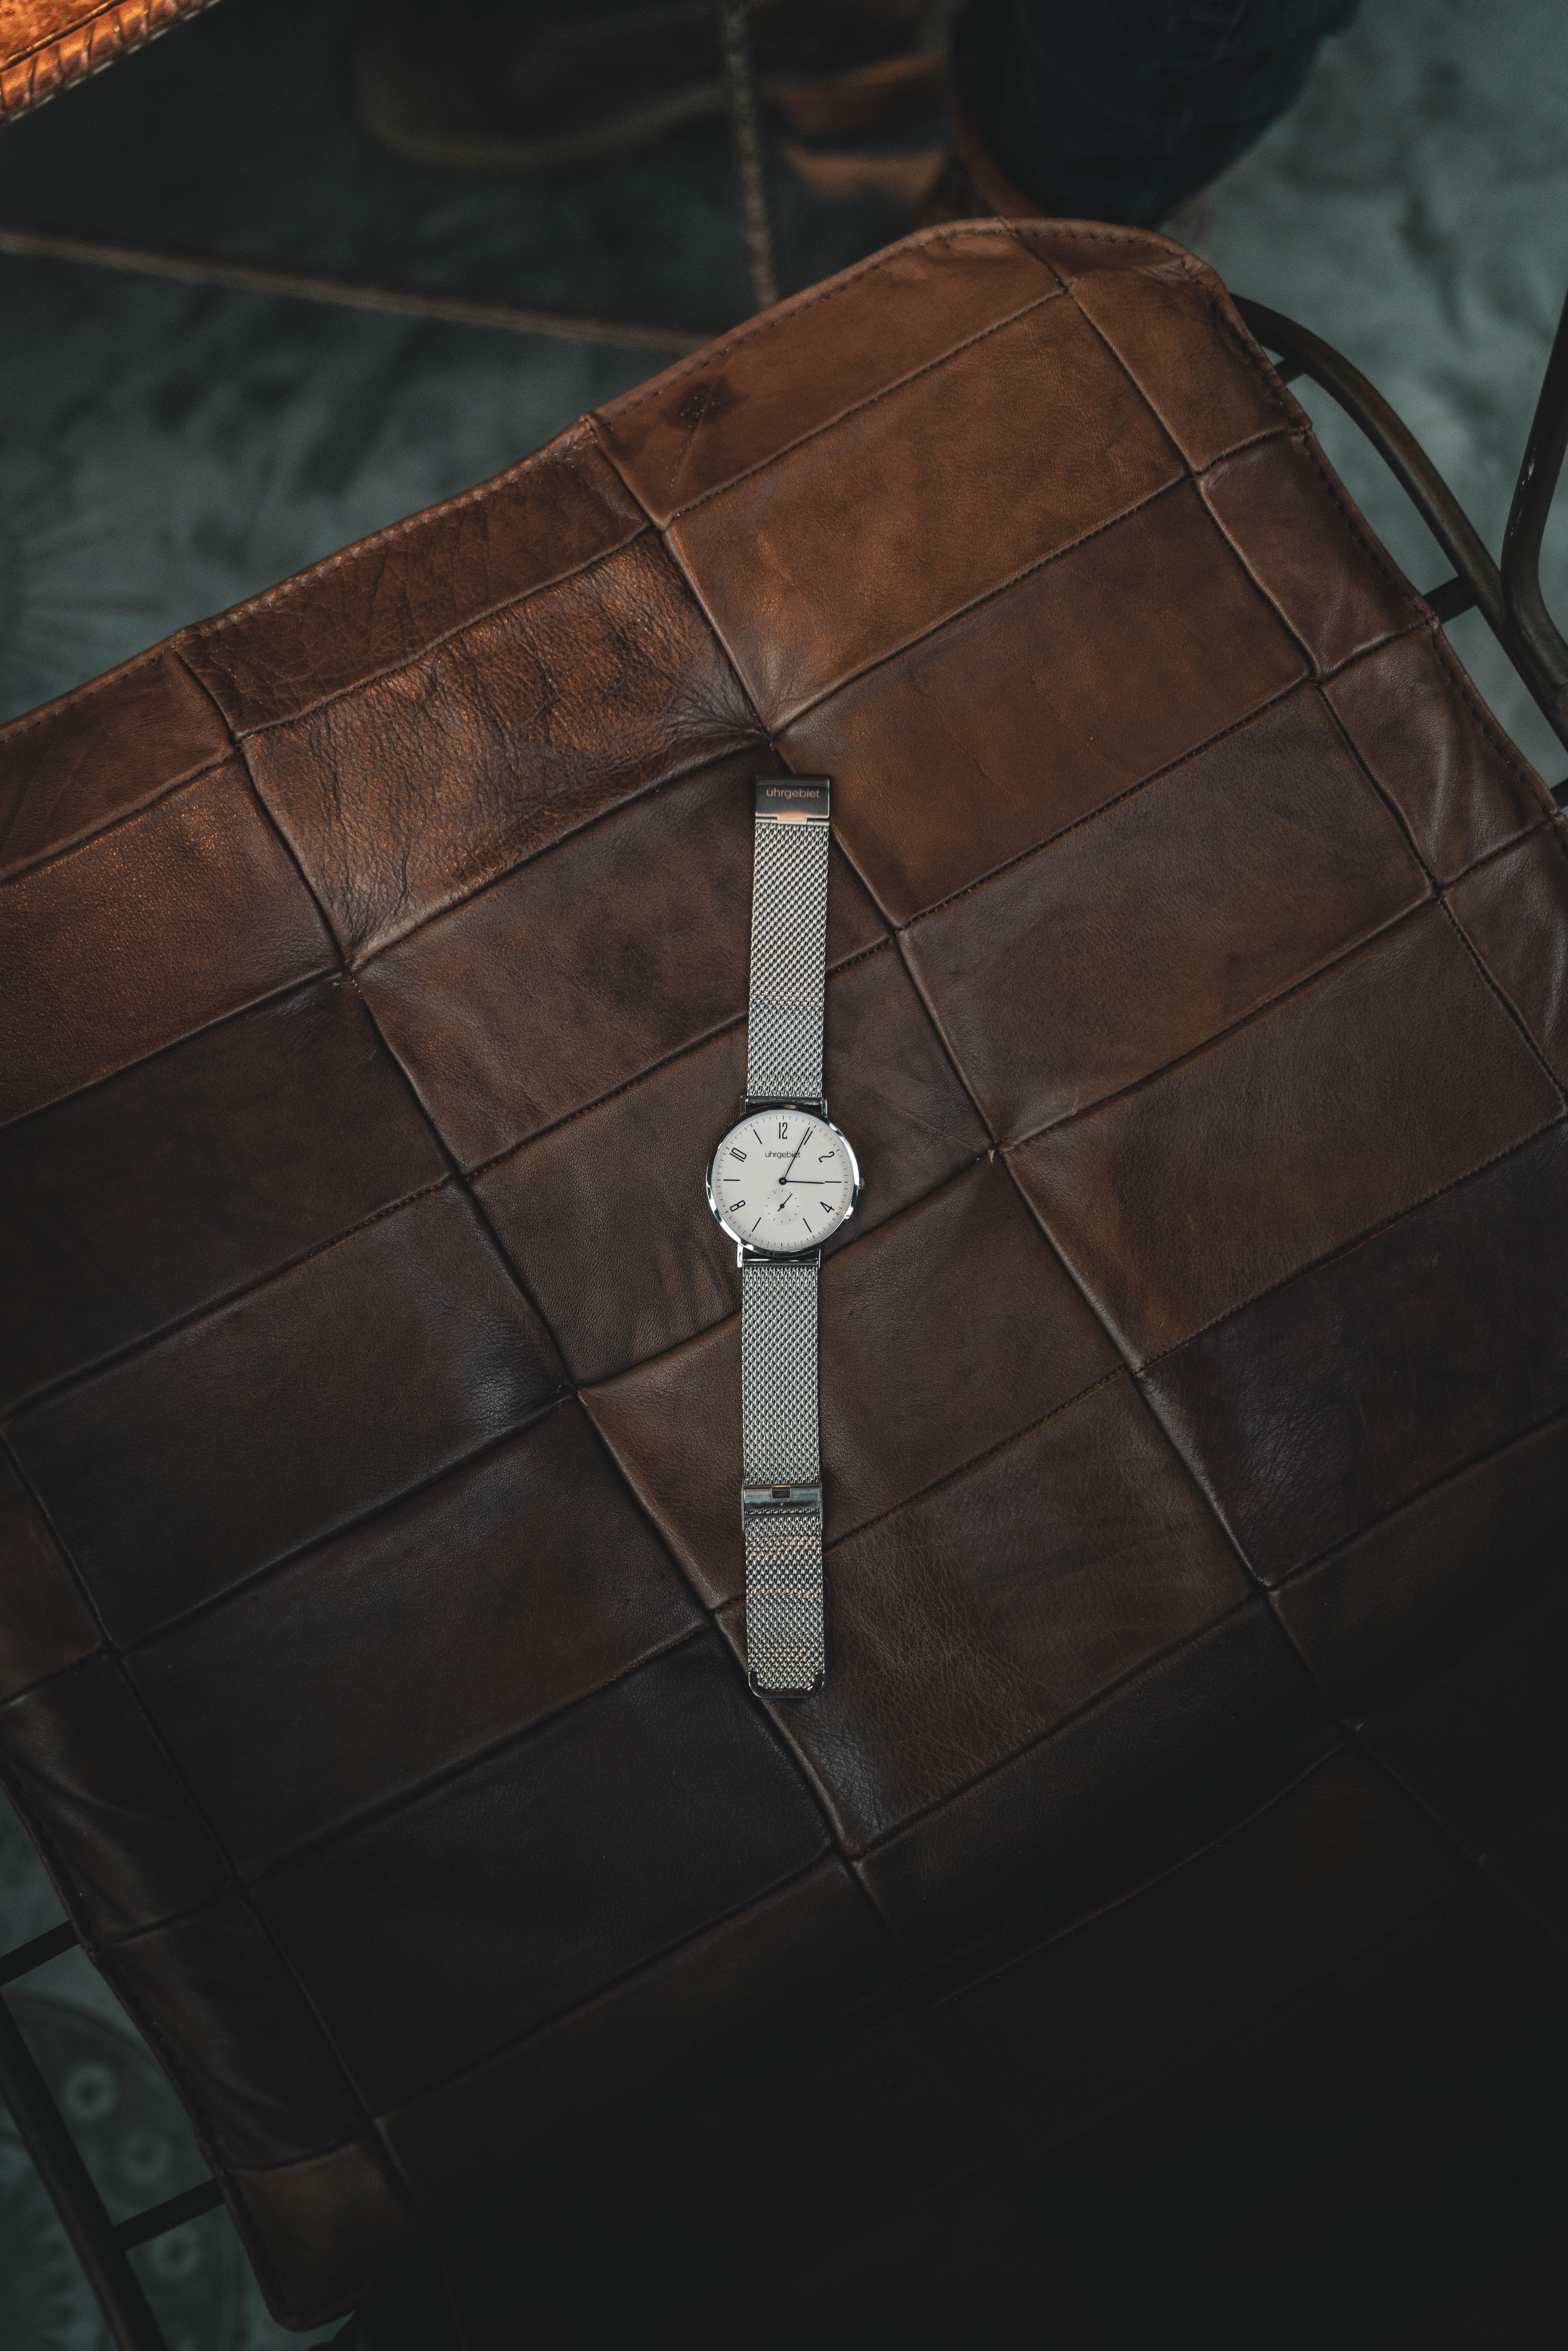 round silver colored watch on table